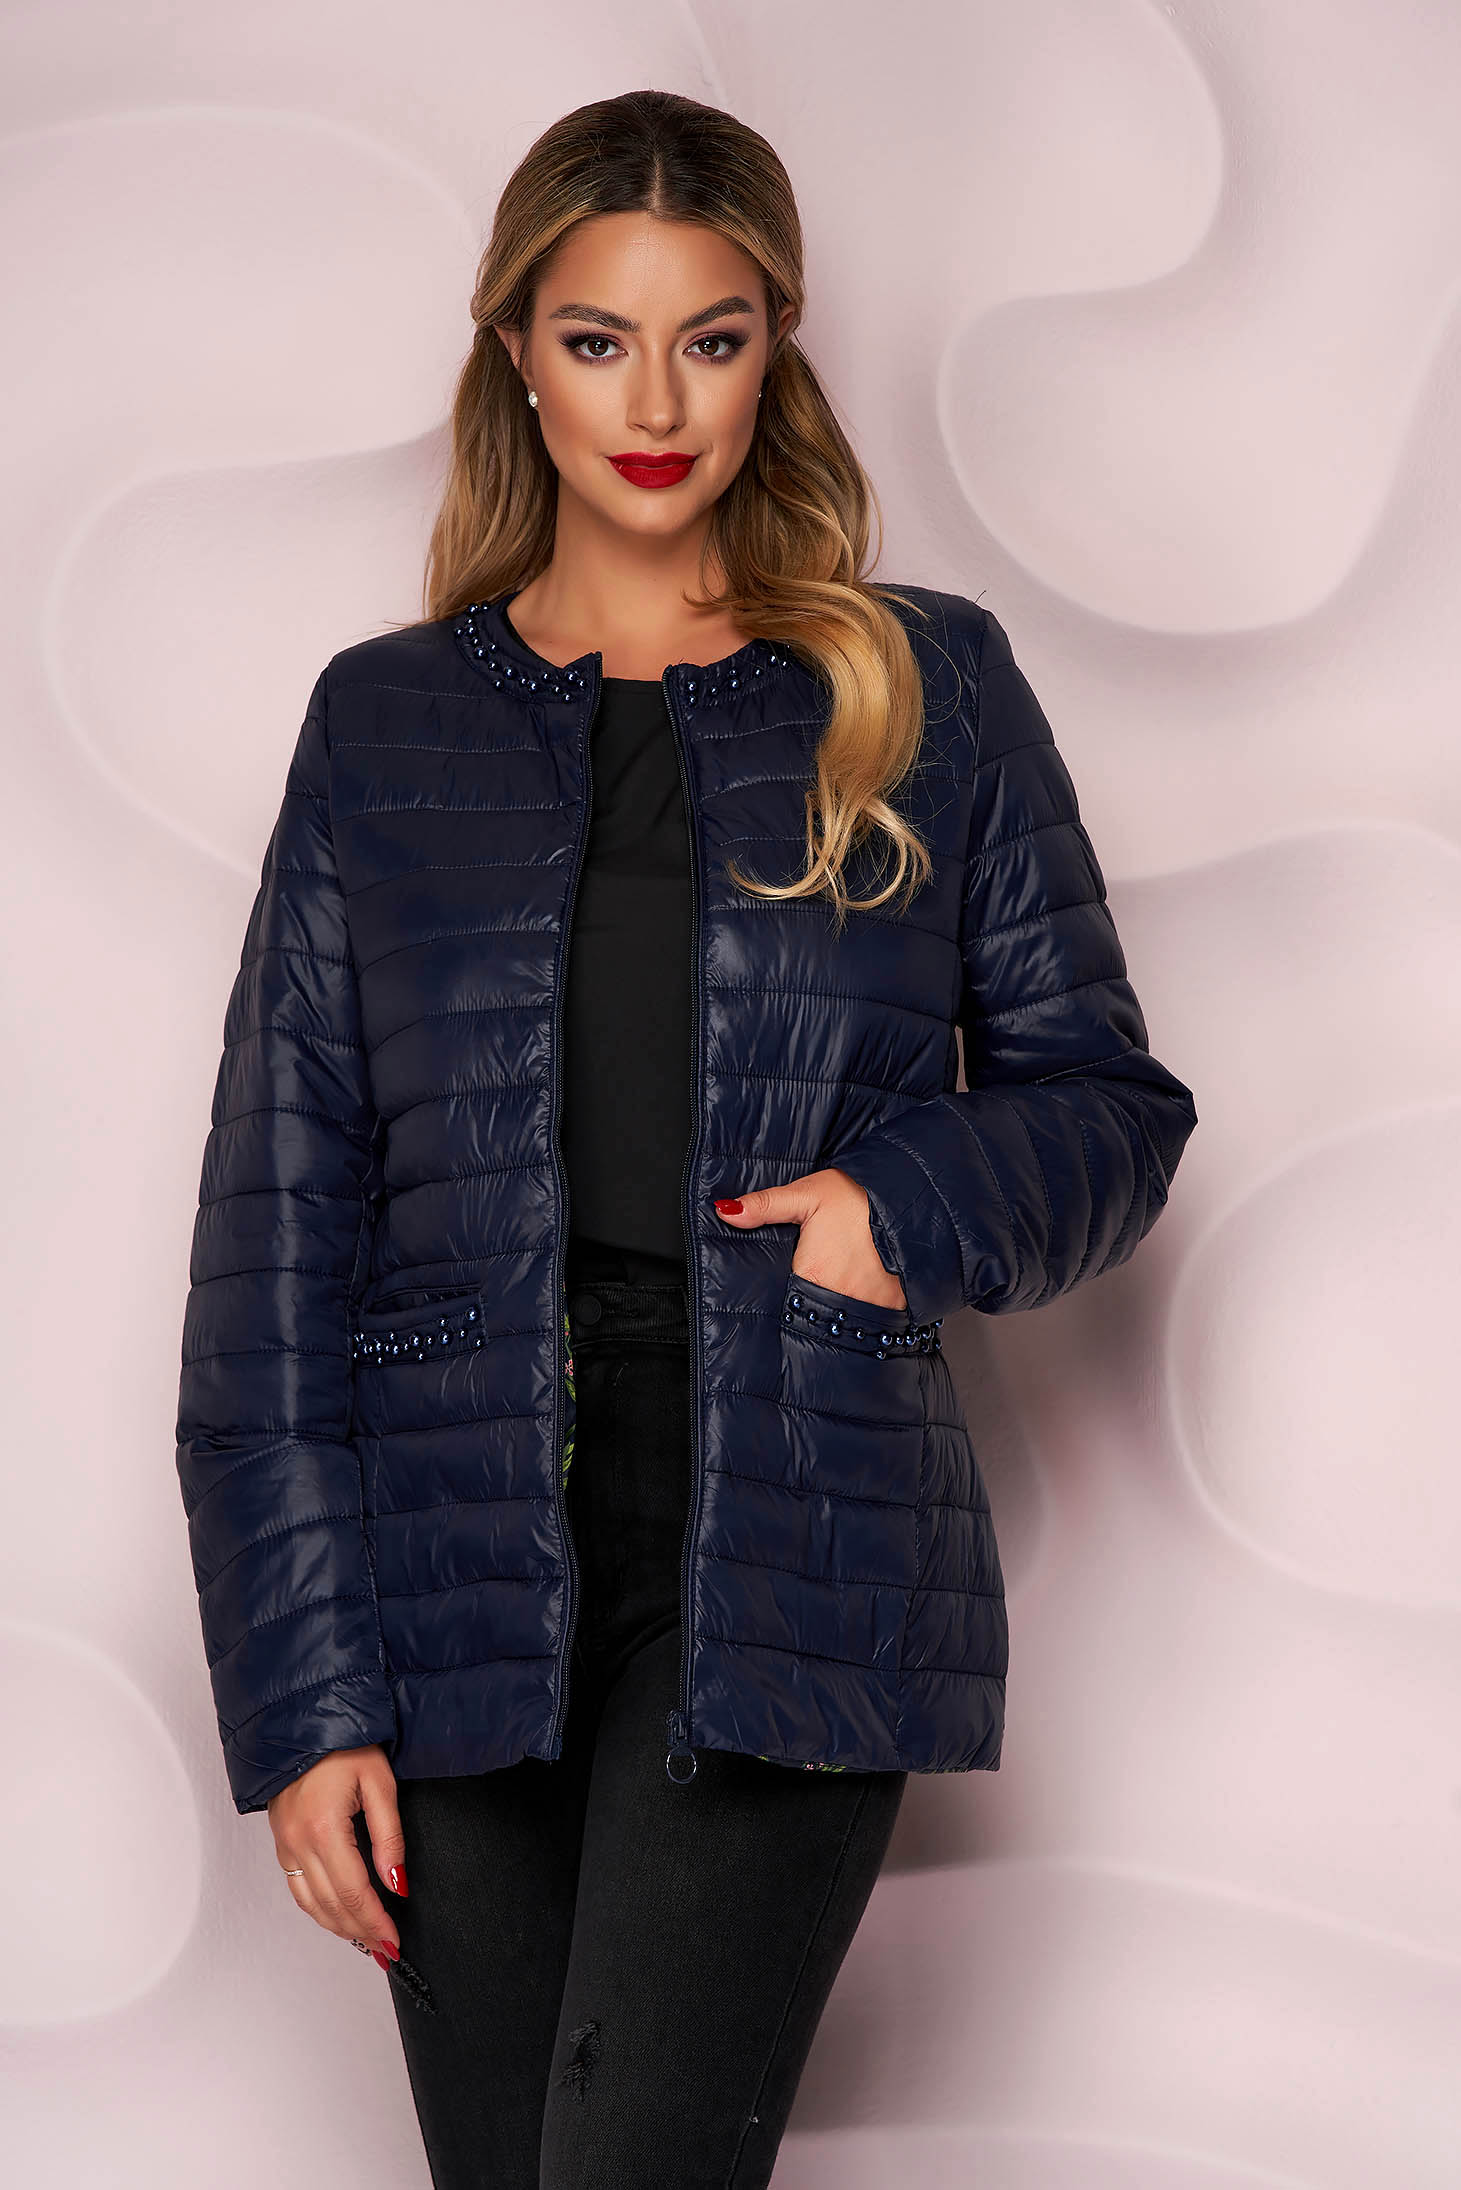 Darkblue jacket from slicker thin fabric with pearls straight